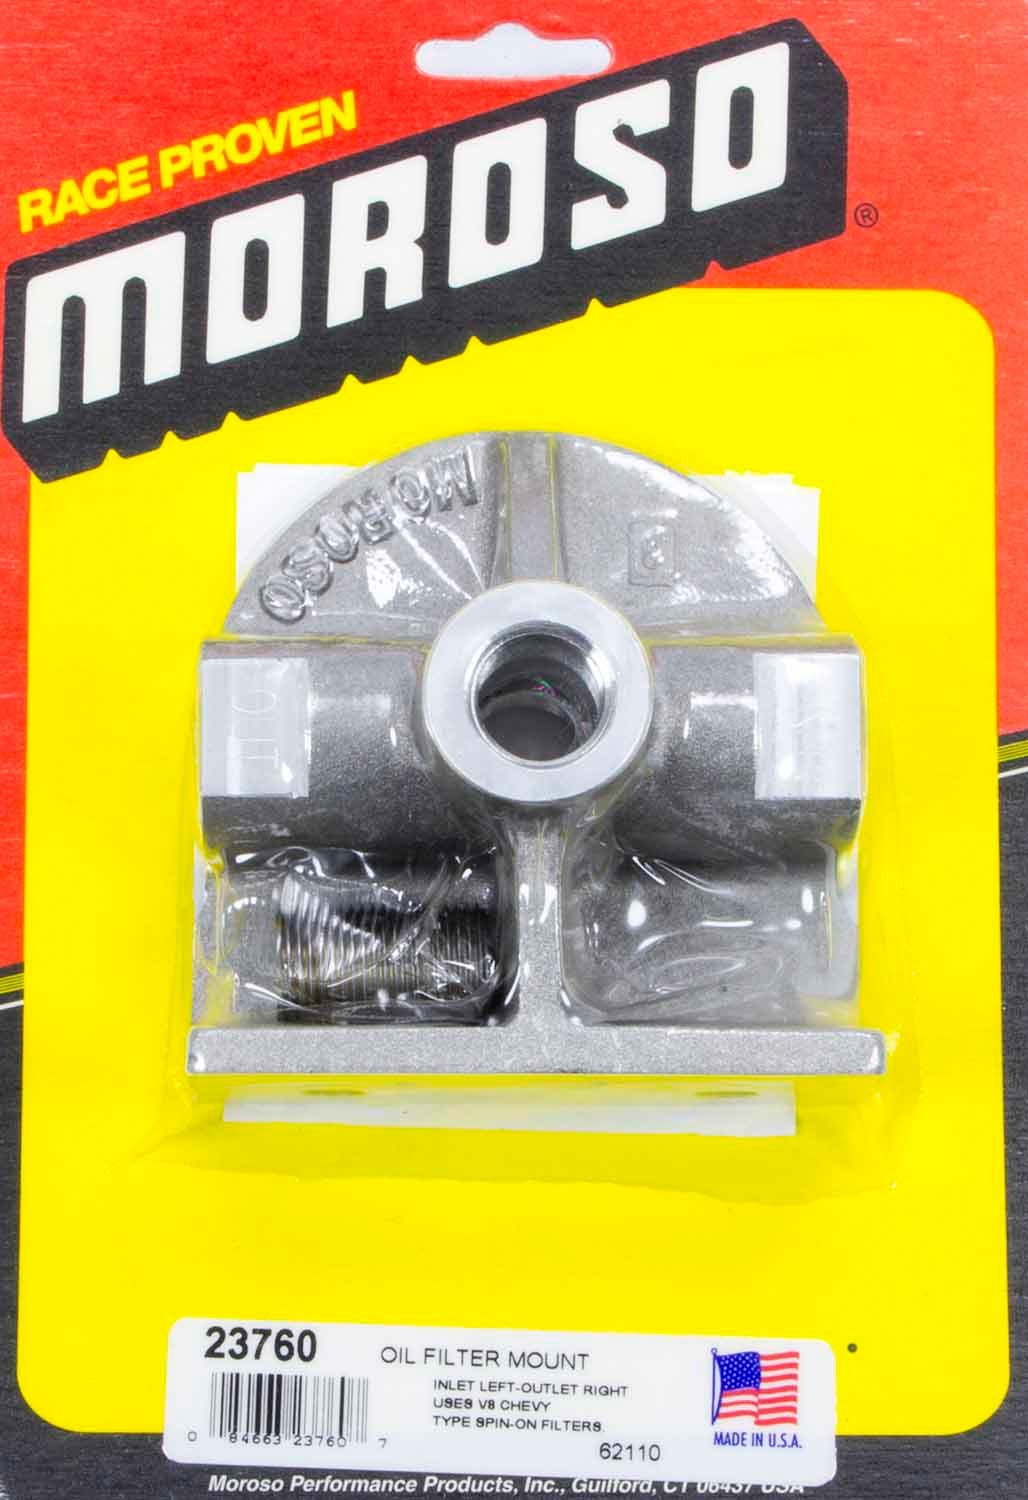 Moroso 23760 Oil Filter Mount, 1/2 in NPT Female Ports, Aluminum, Natural, Chevy Style Filter, Each